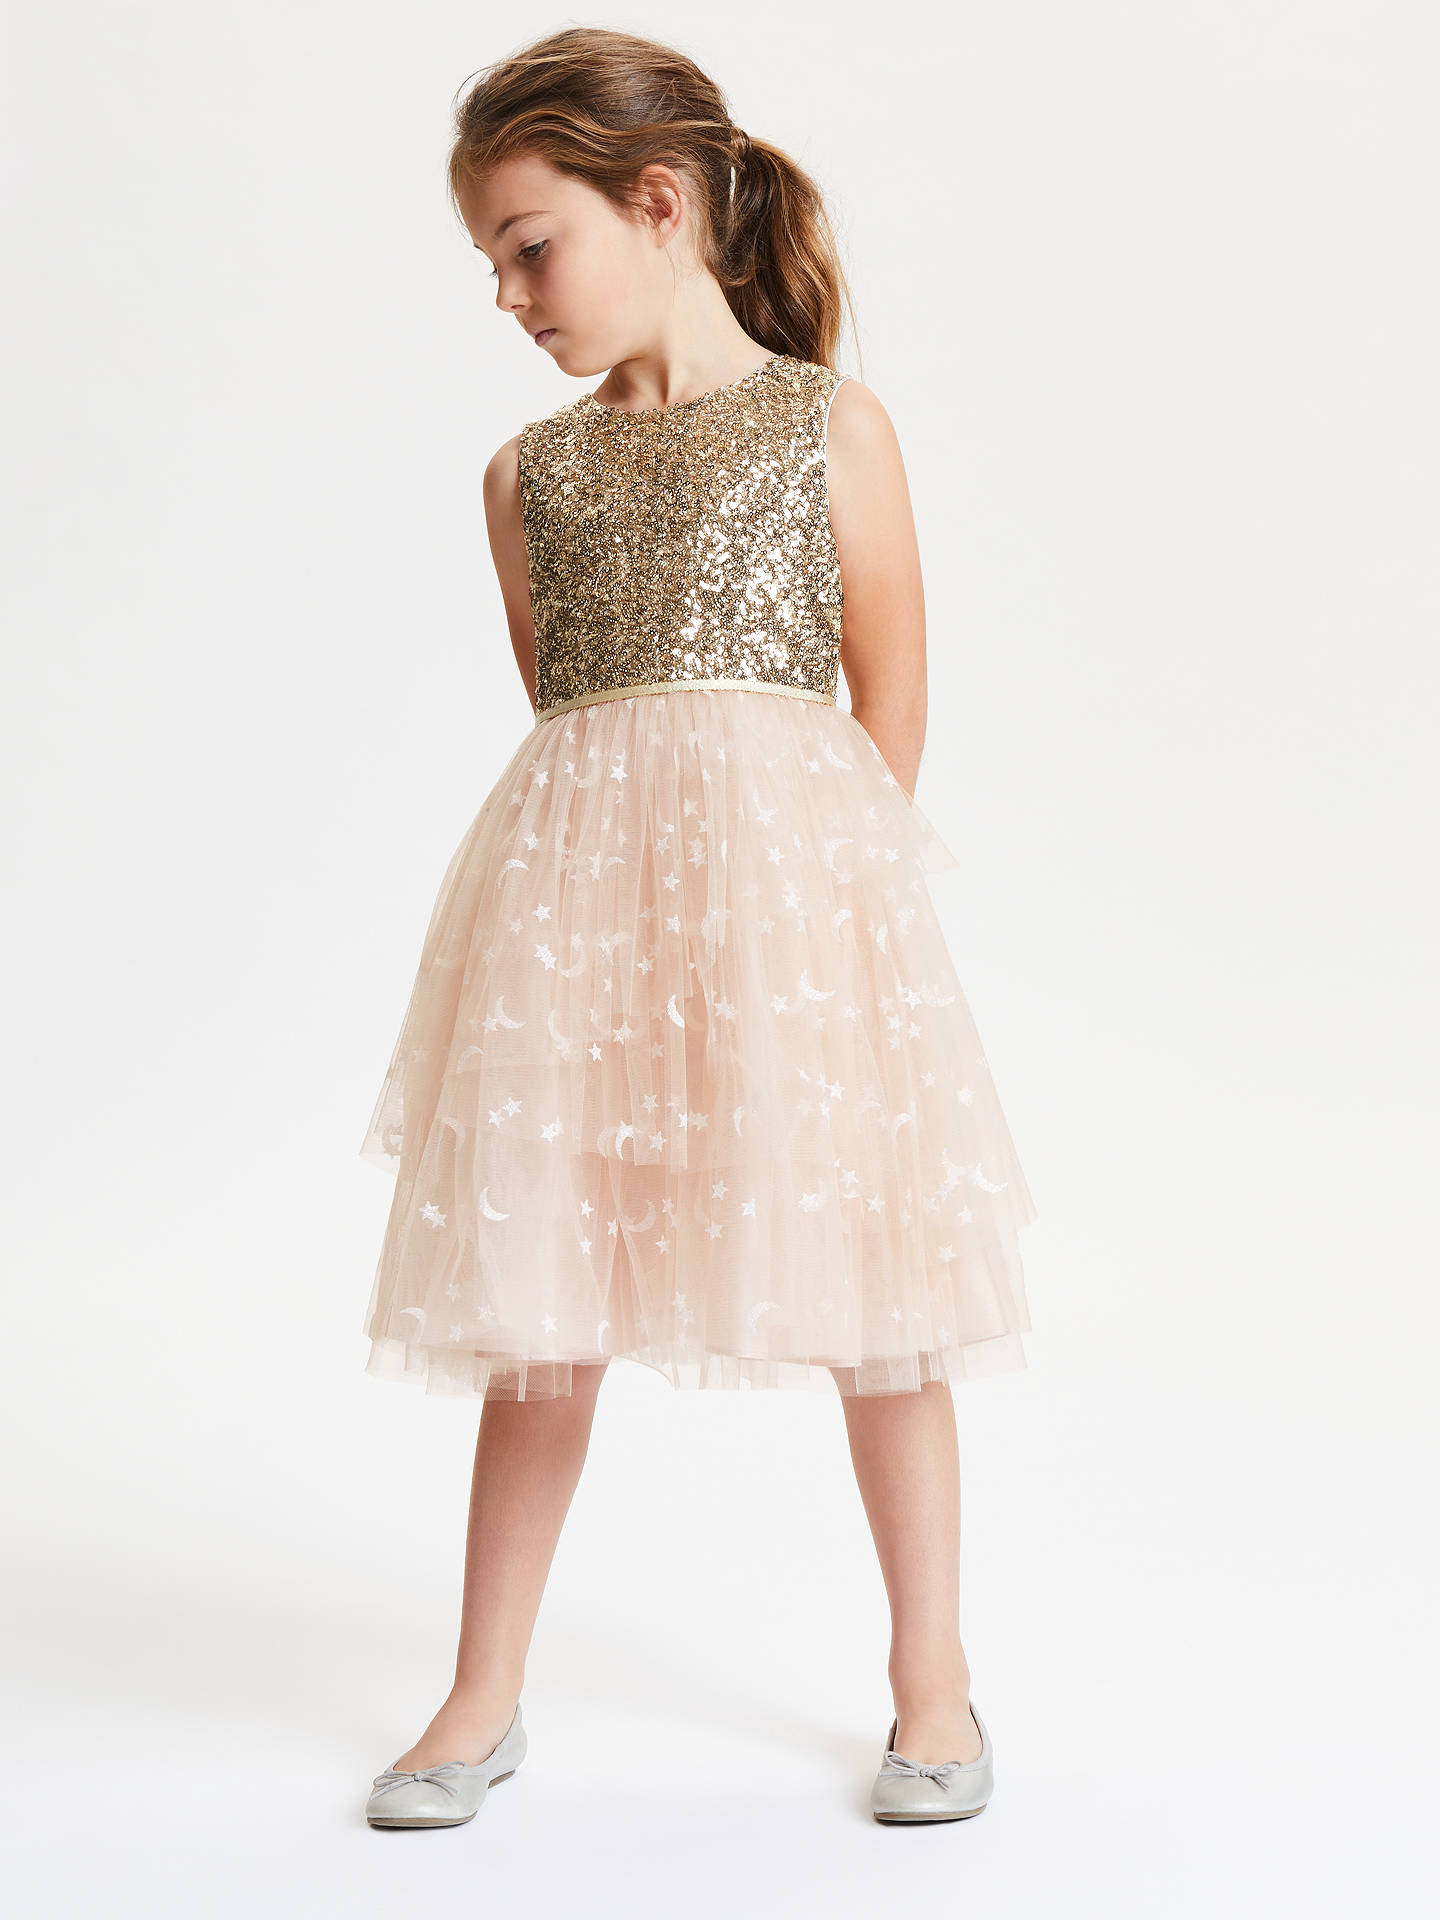 BuyJohn Lewis & Partners Girls' Sequin Mesh Dress, Neutral/Gold, 3 years Online at johnlewis.com